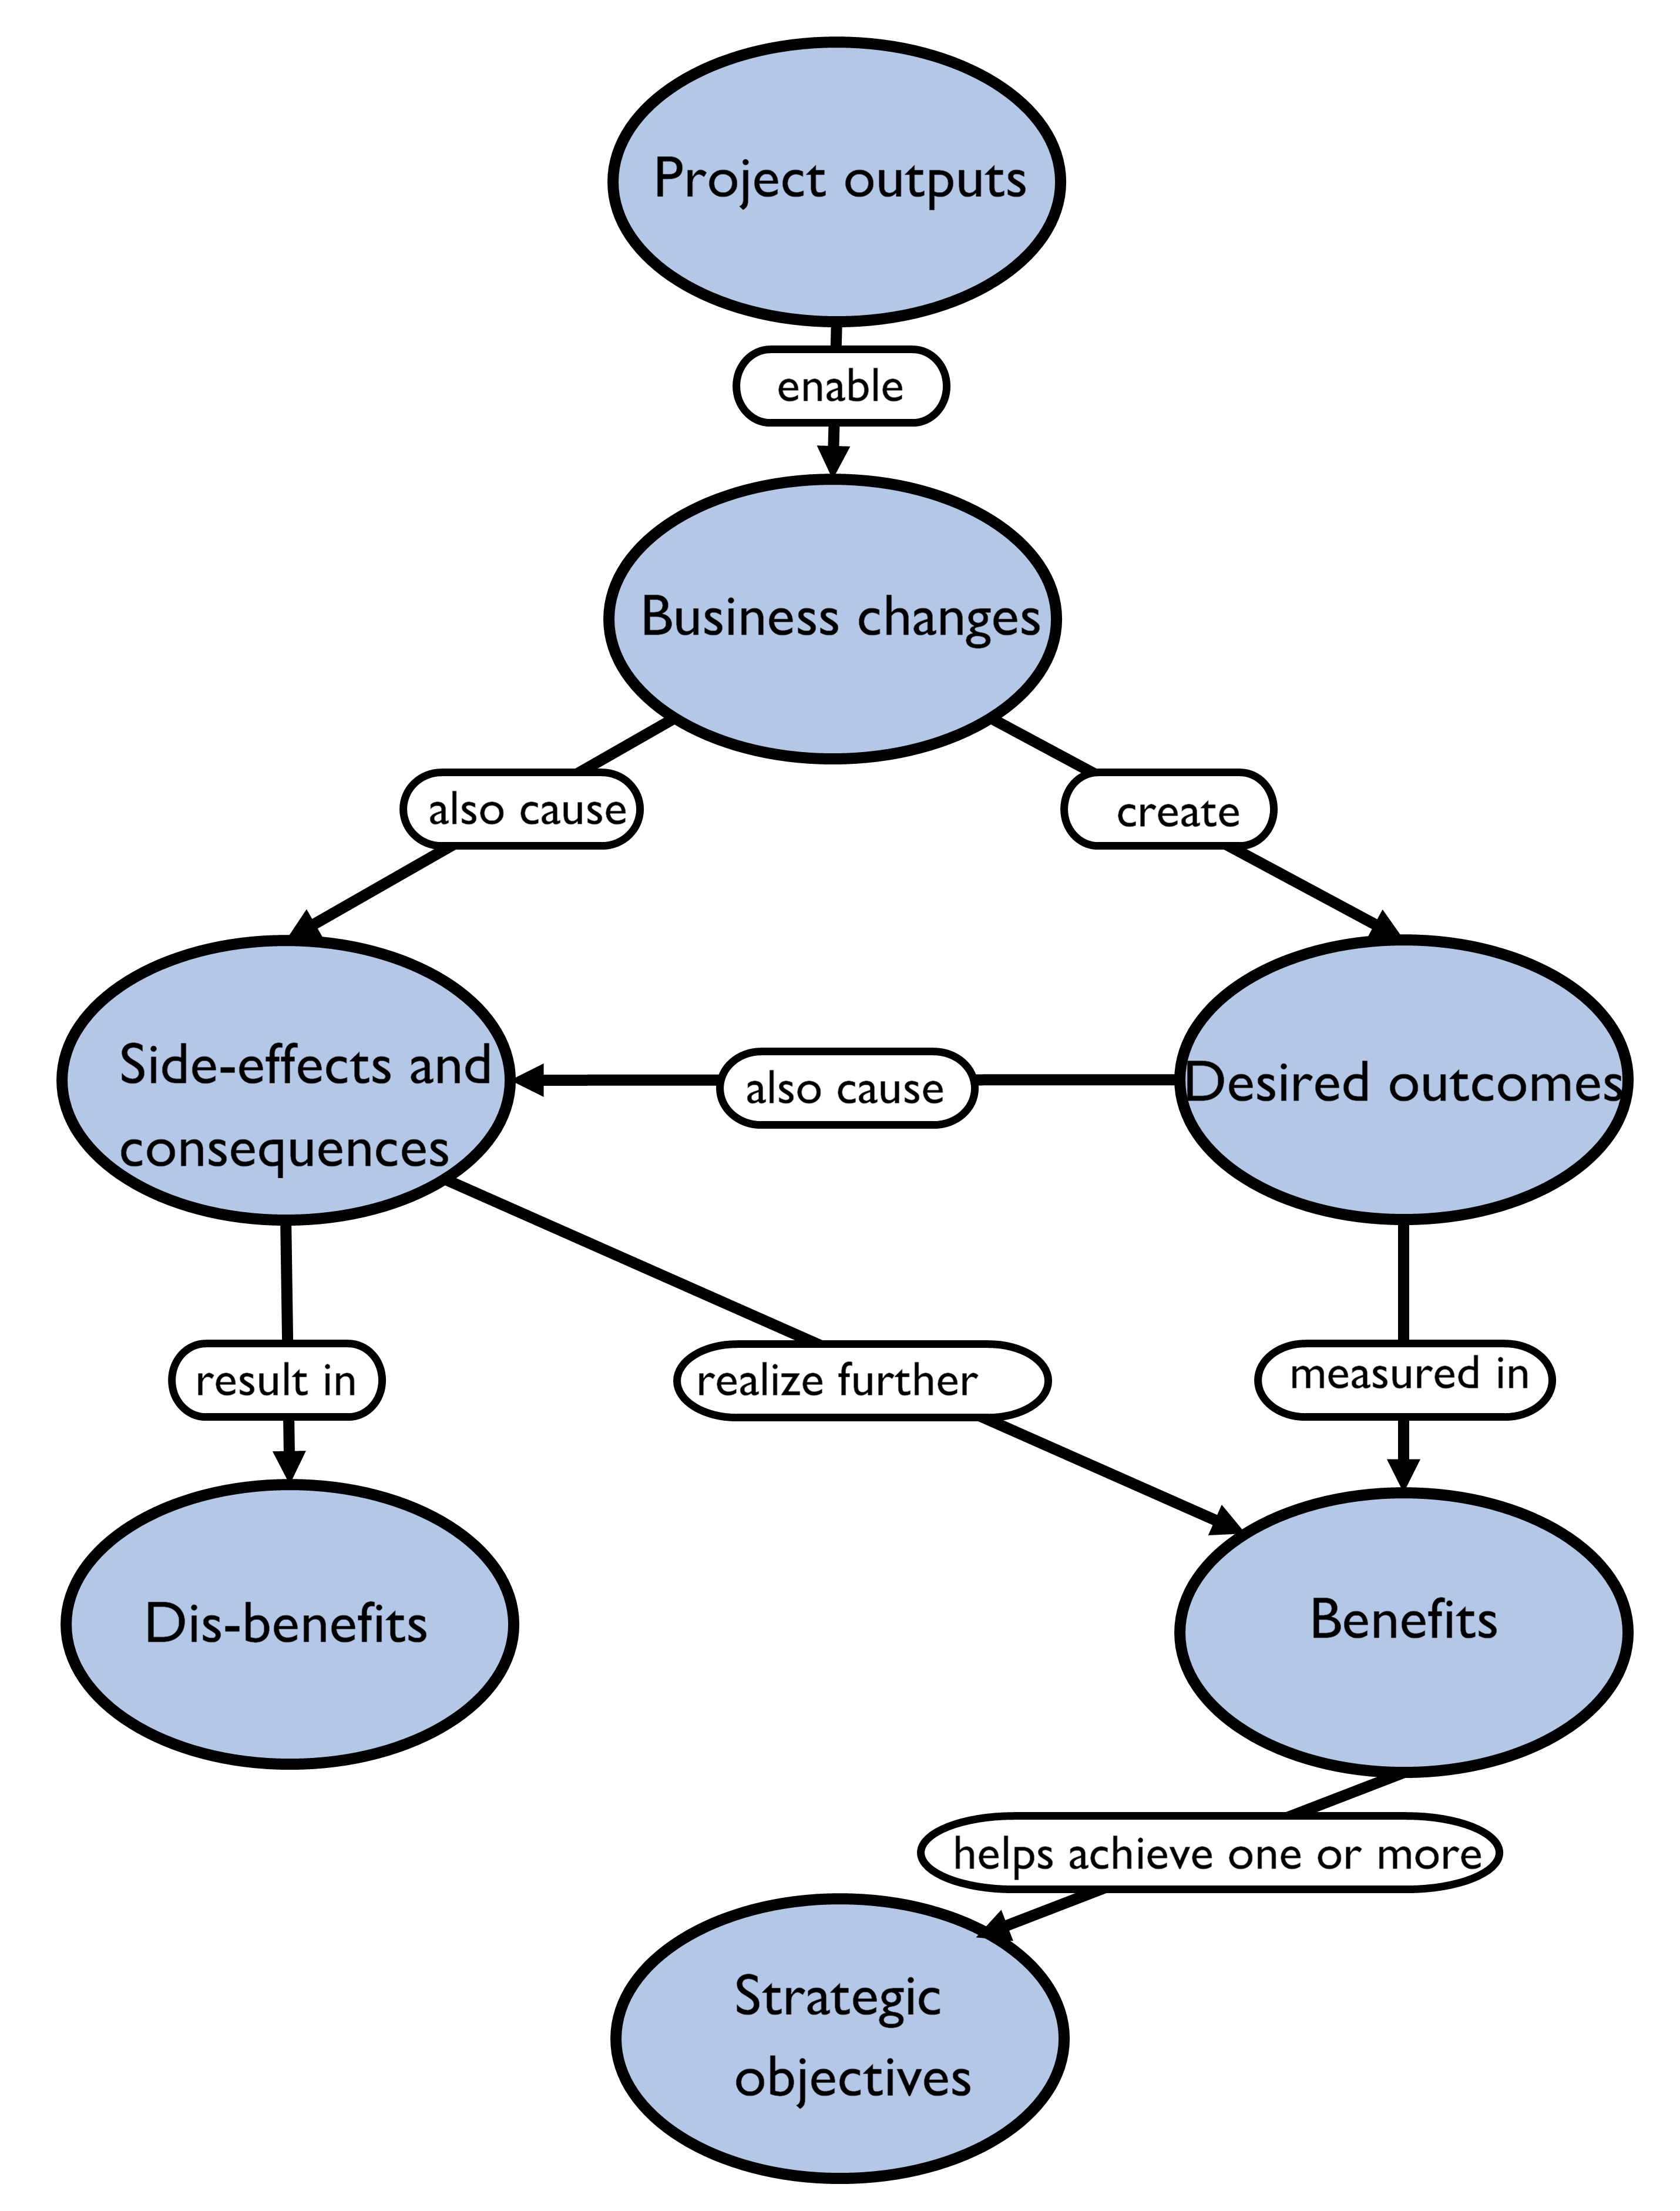 PRINCE2's diagram showing the relationship between outputs, outcomes, and benefits. From PRINCE2 2009, Figure 4.1 on page 22.